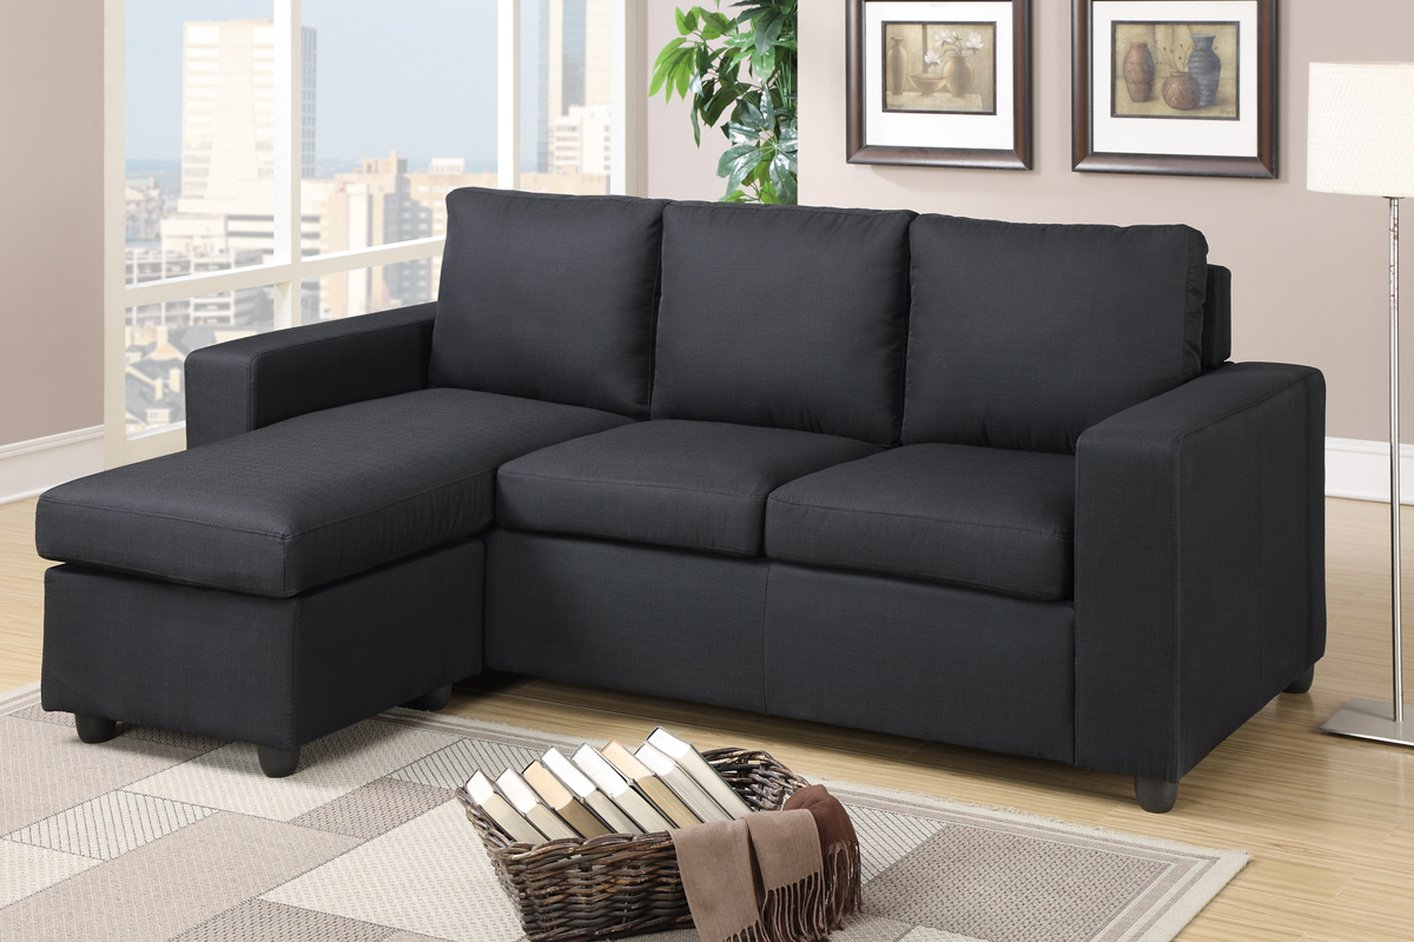 Poundex akeneo f7490 black fabric sectional sofa steal a for Sectional couch